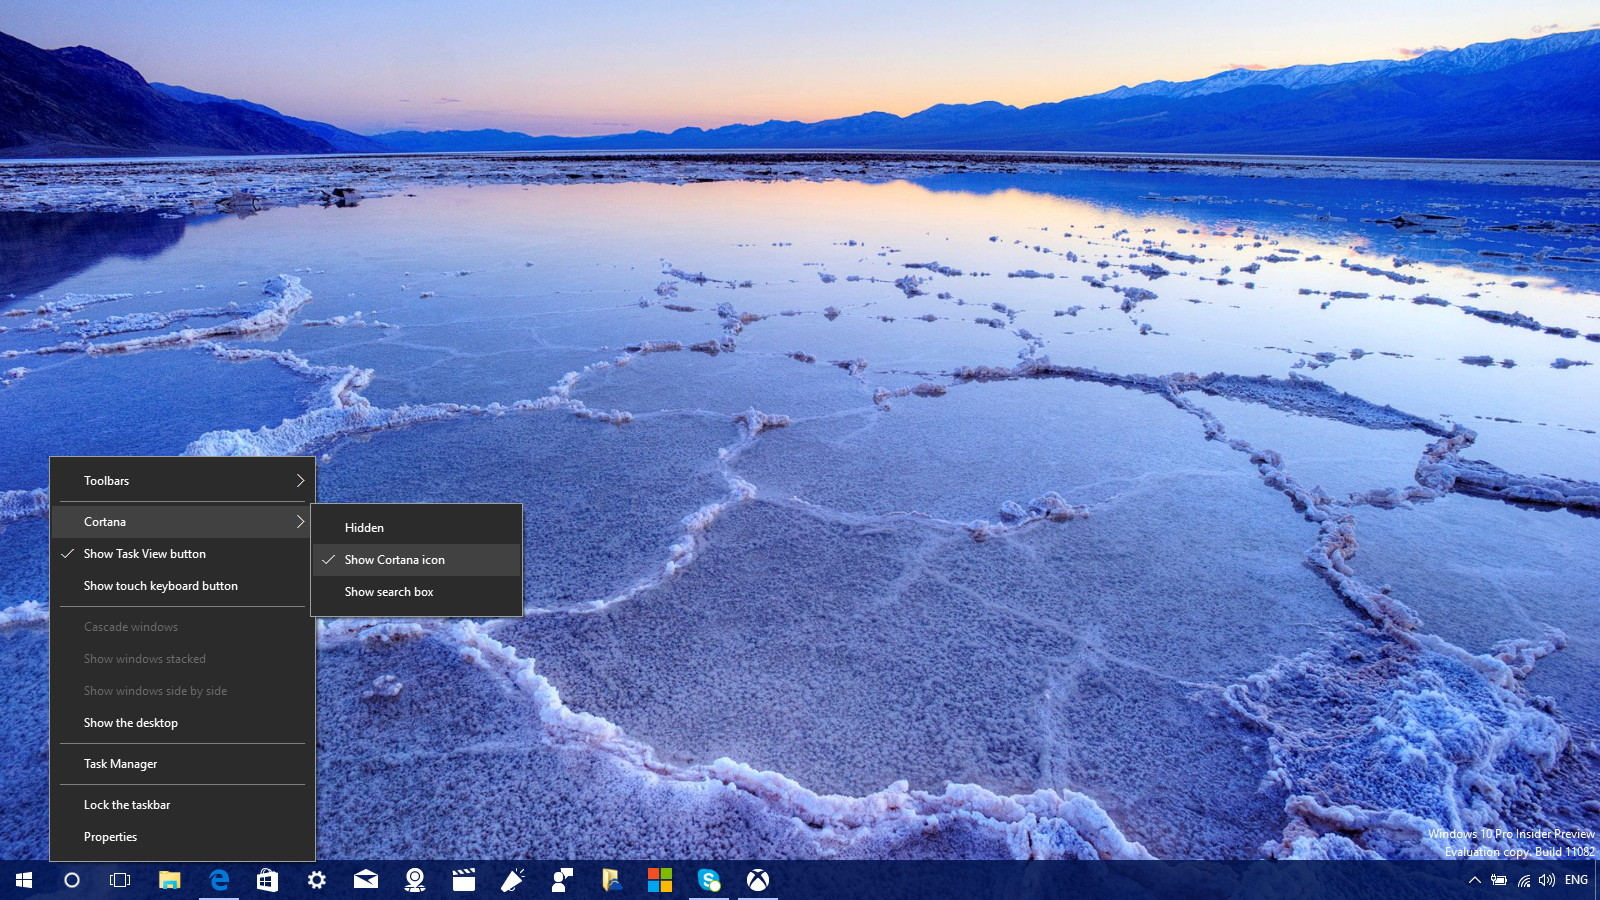 show-cortana-icon-windows-10-taskbar.jpg